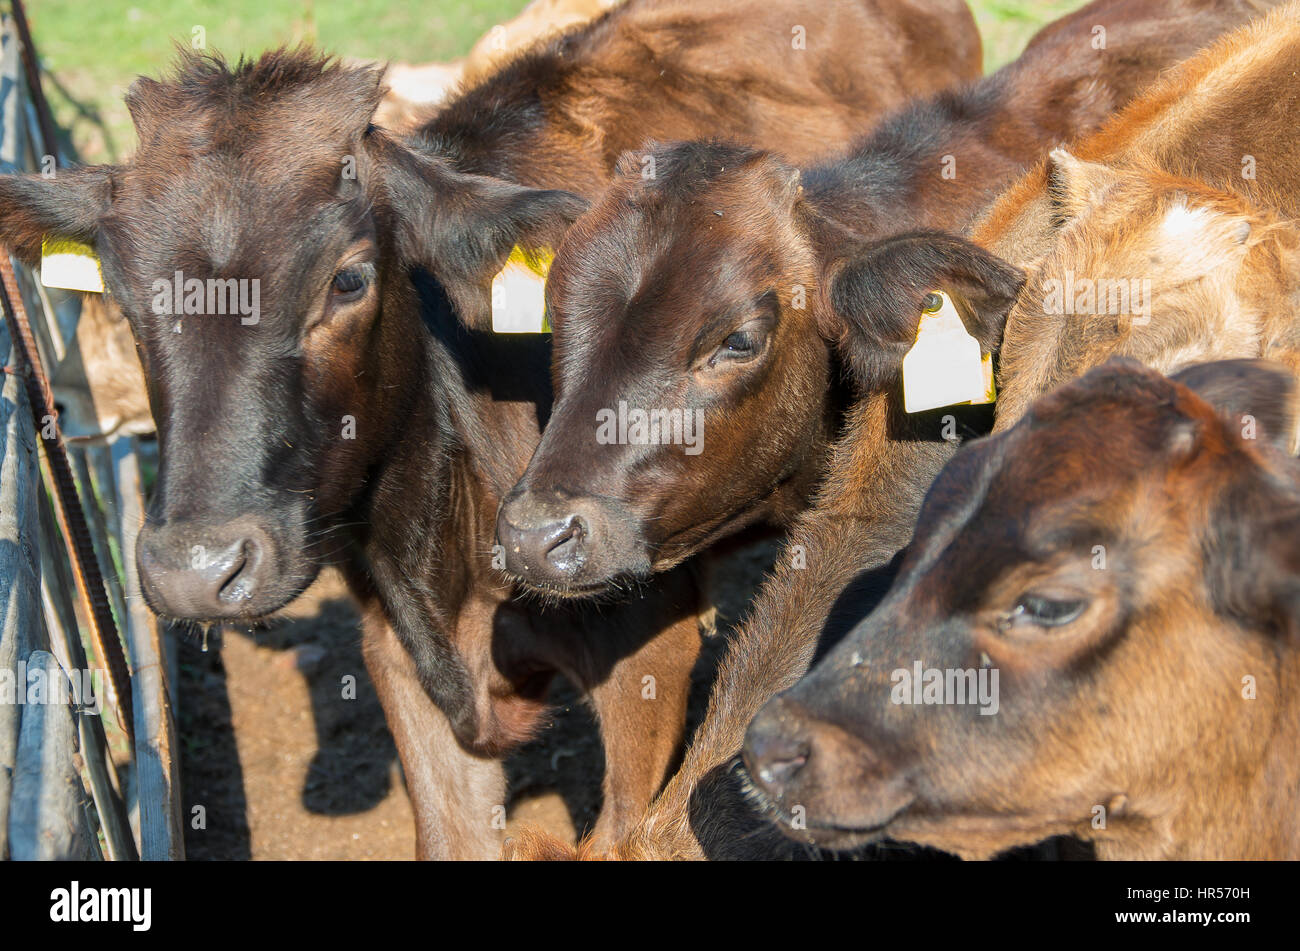 Calves. Baby cow calf standing at stall at farm countryside. - Stock Image